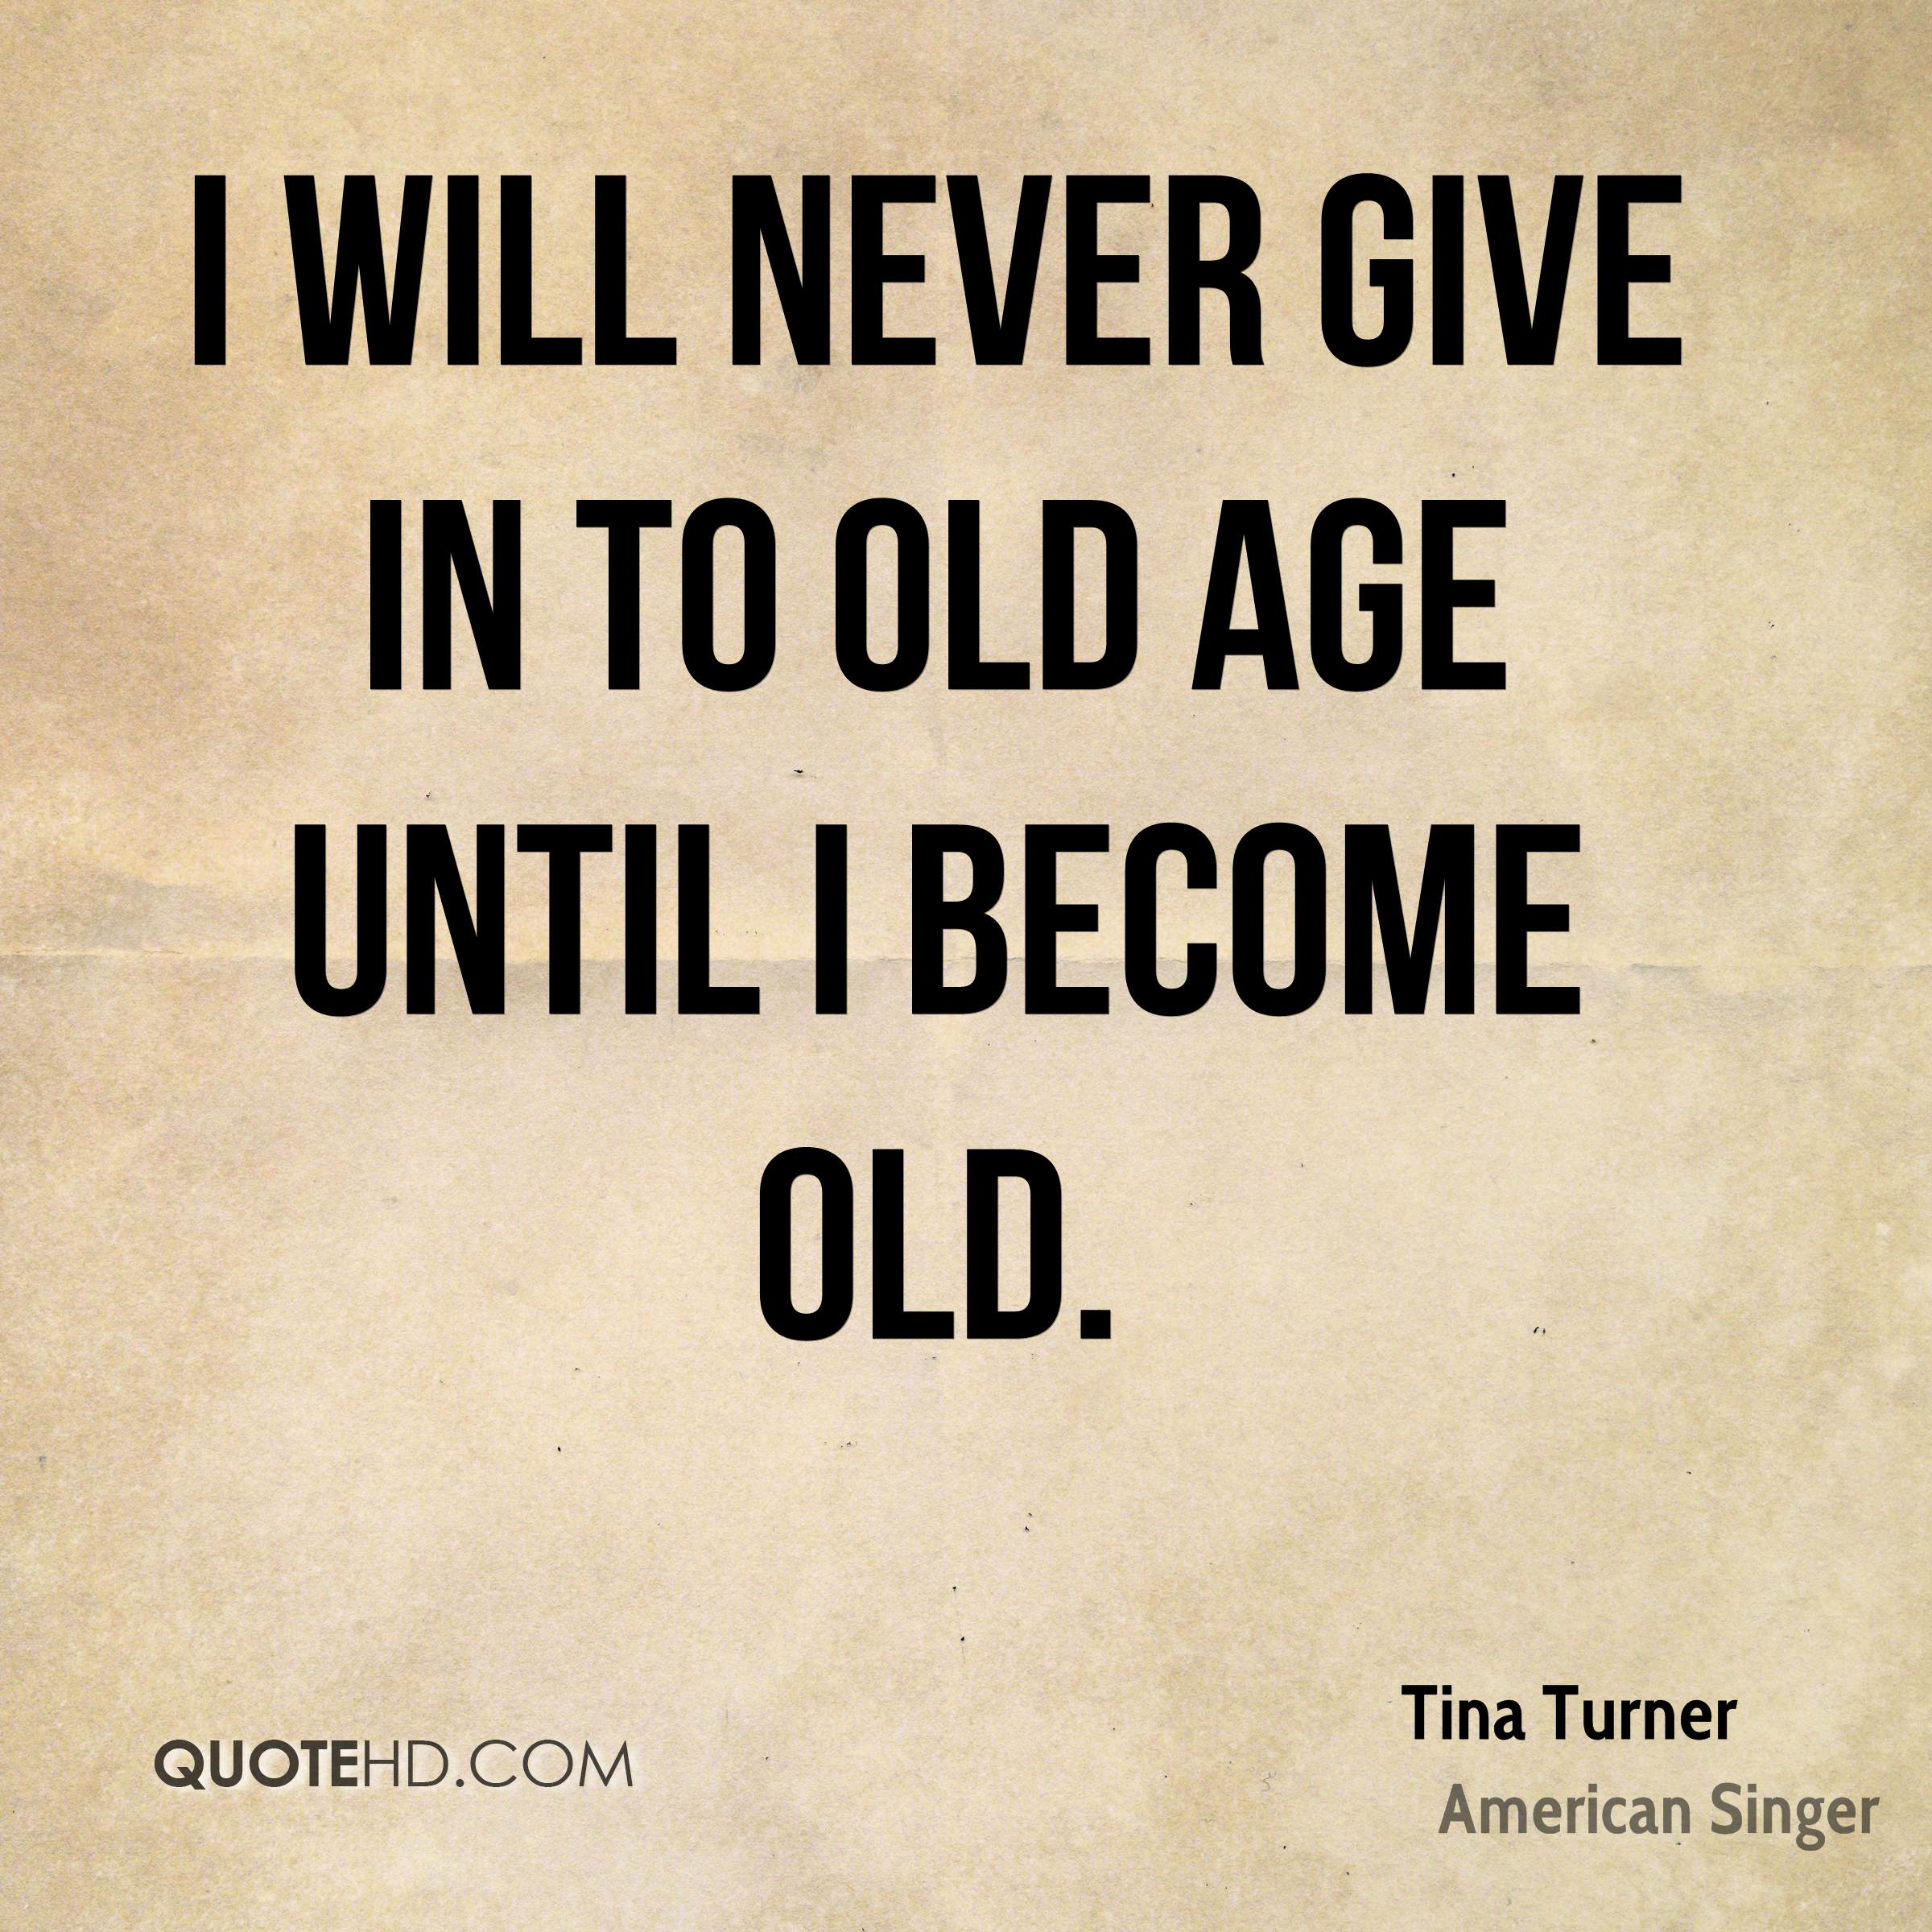 I will never give in to old age until I become old.